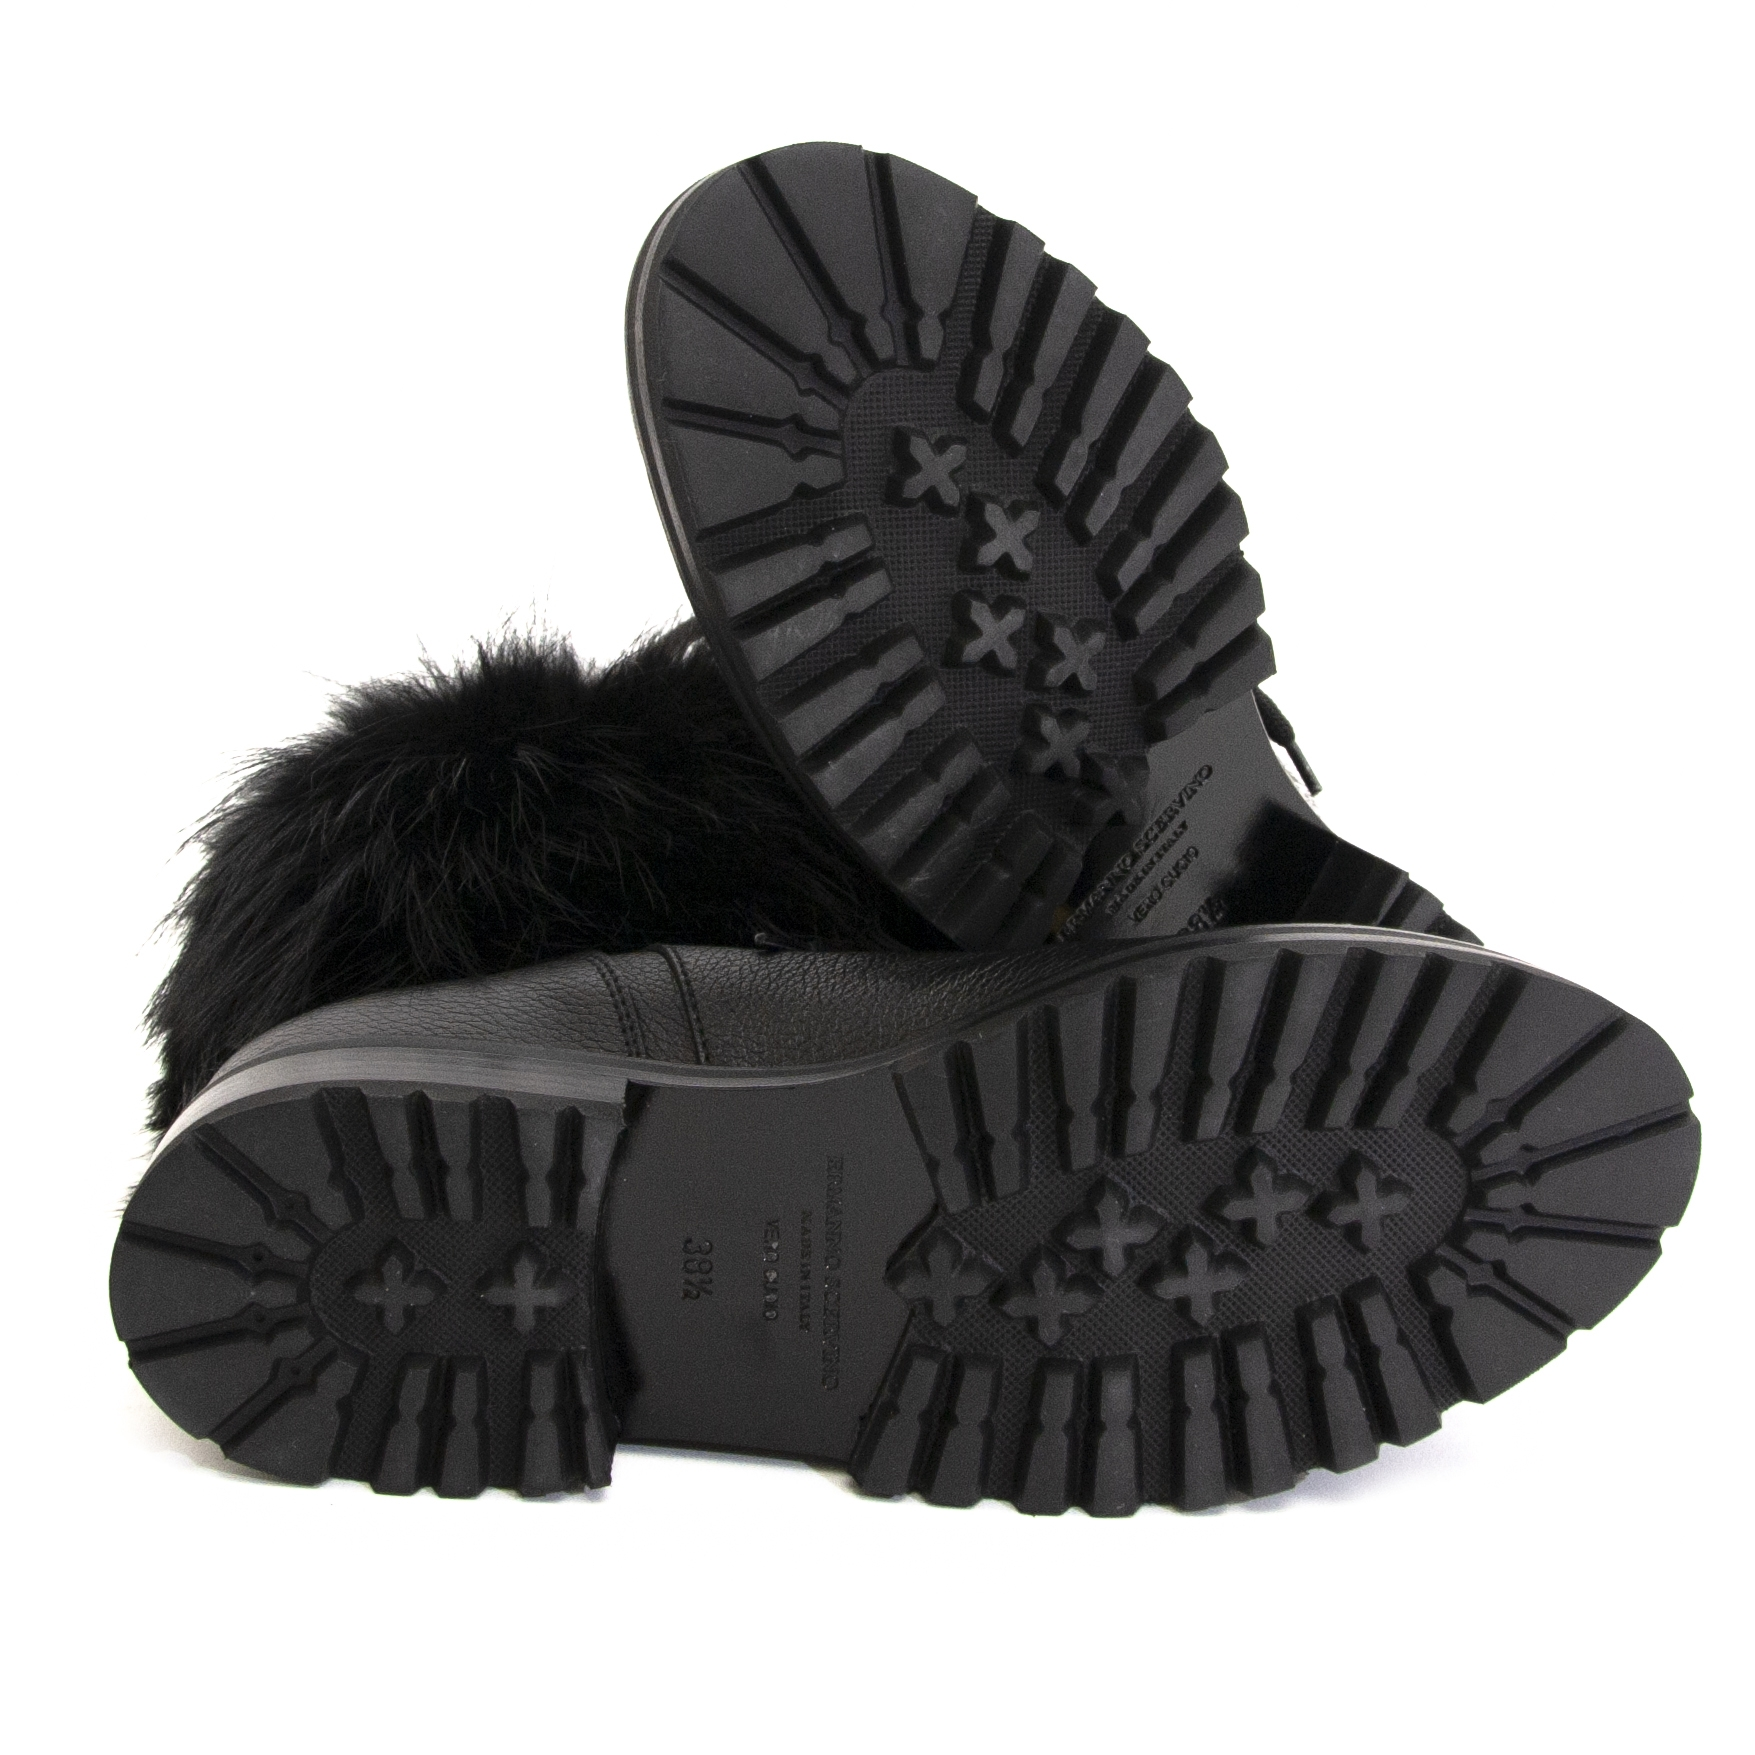 Ermanno Scervino Fur Leather Boots te koop bij Labellov